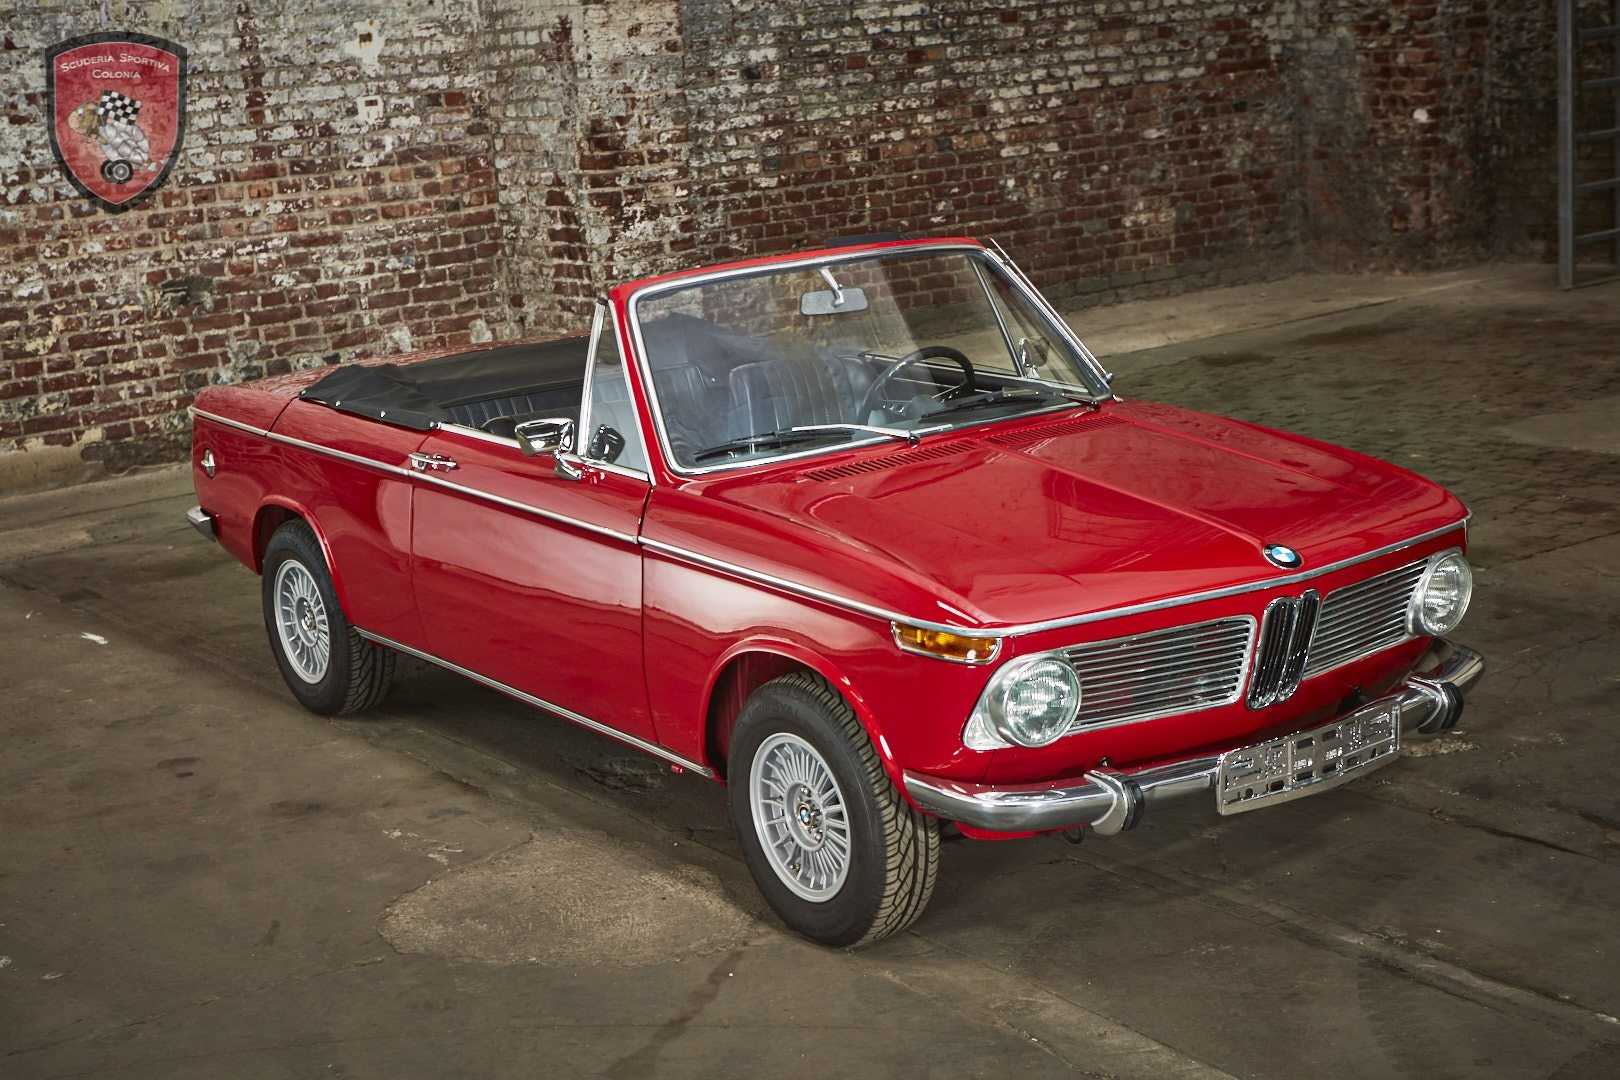 1970 Nice BMW 1600 cabriolet  For Sale (picture 1 of 6)